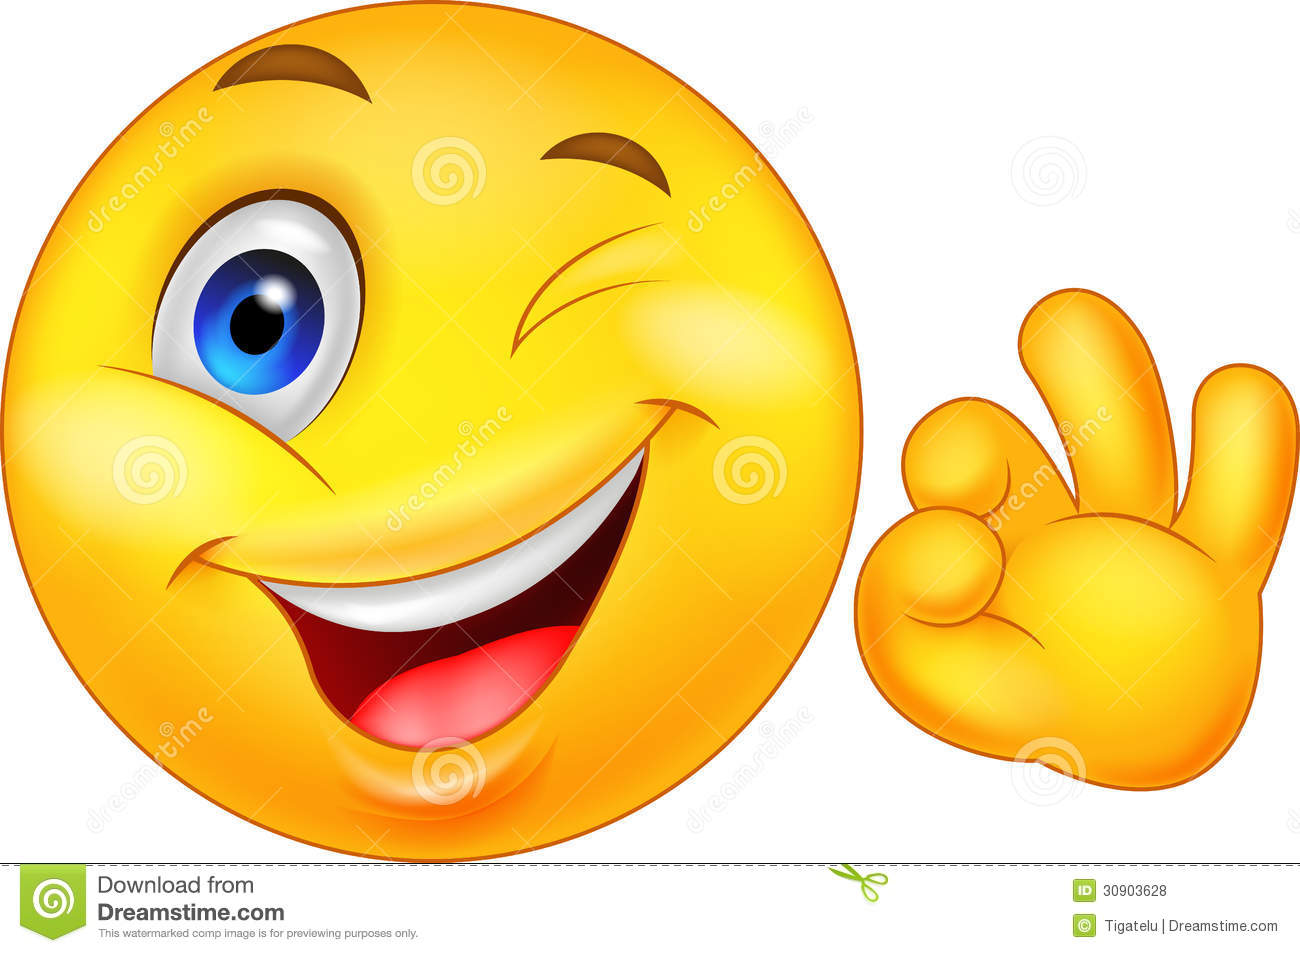 Emoji Smiley Clip Art join the march madness promotion at bet365 poker and win big